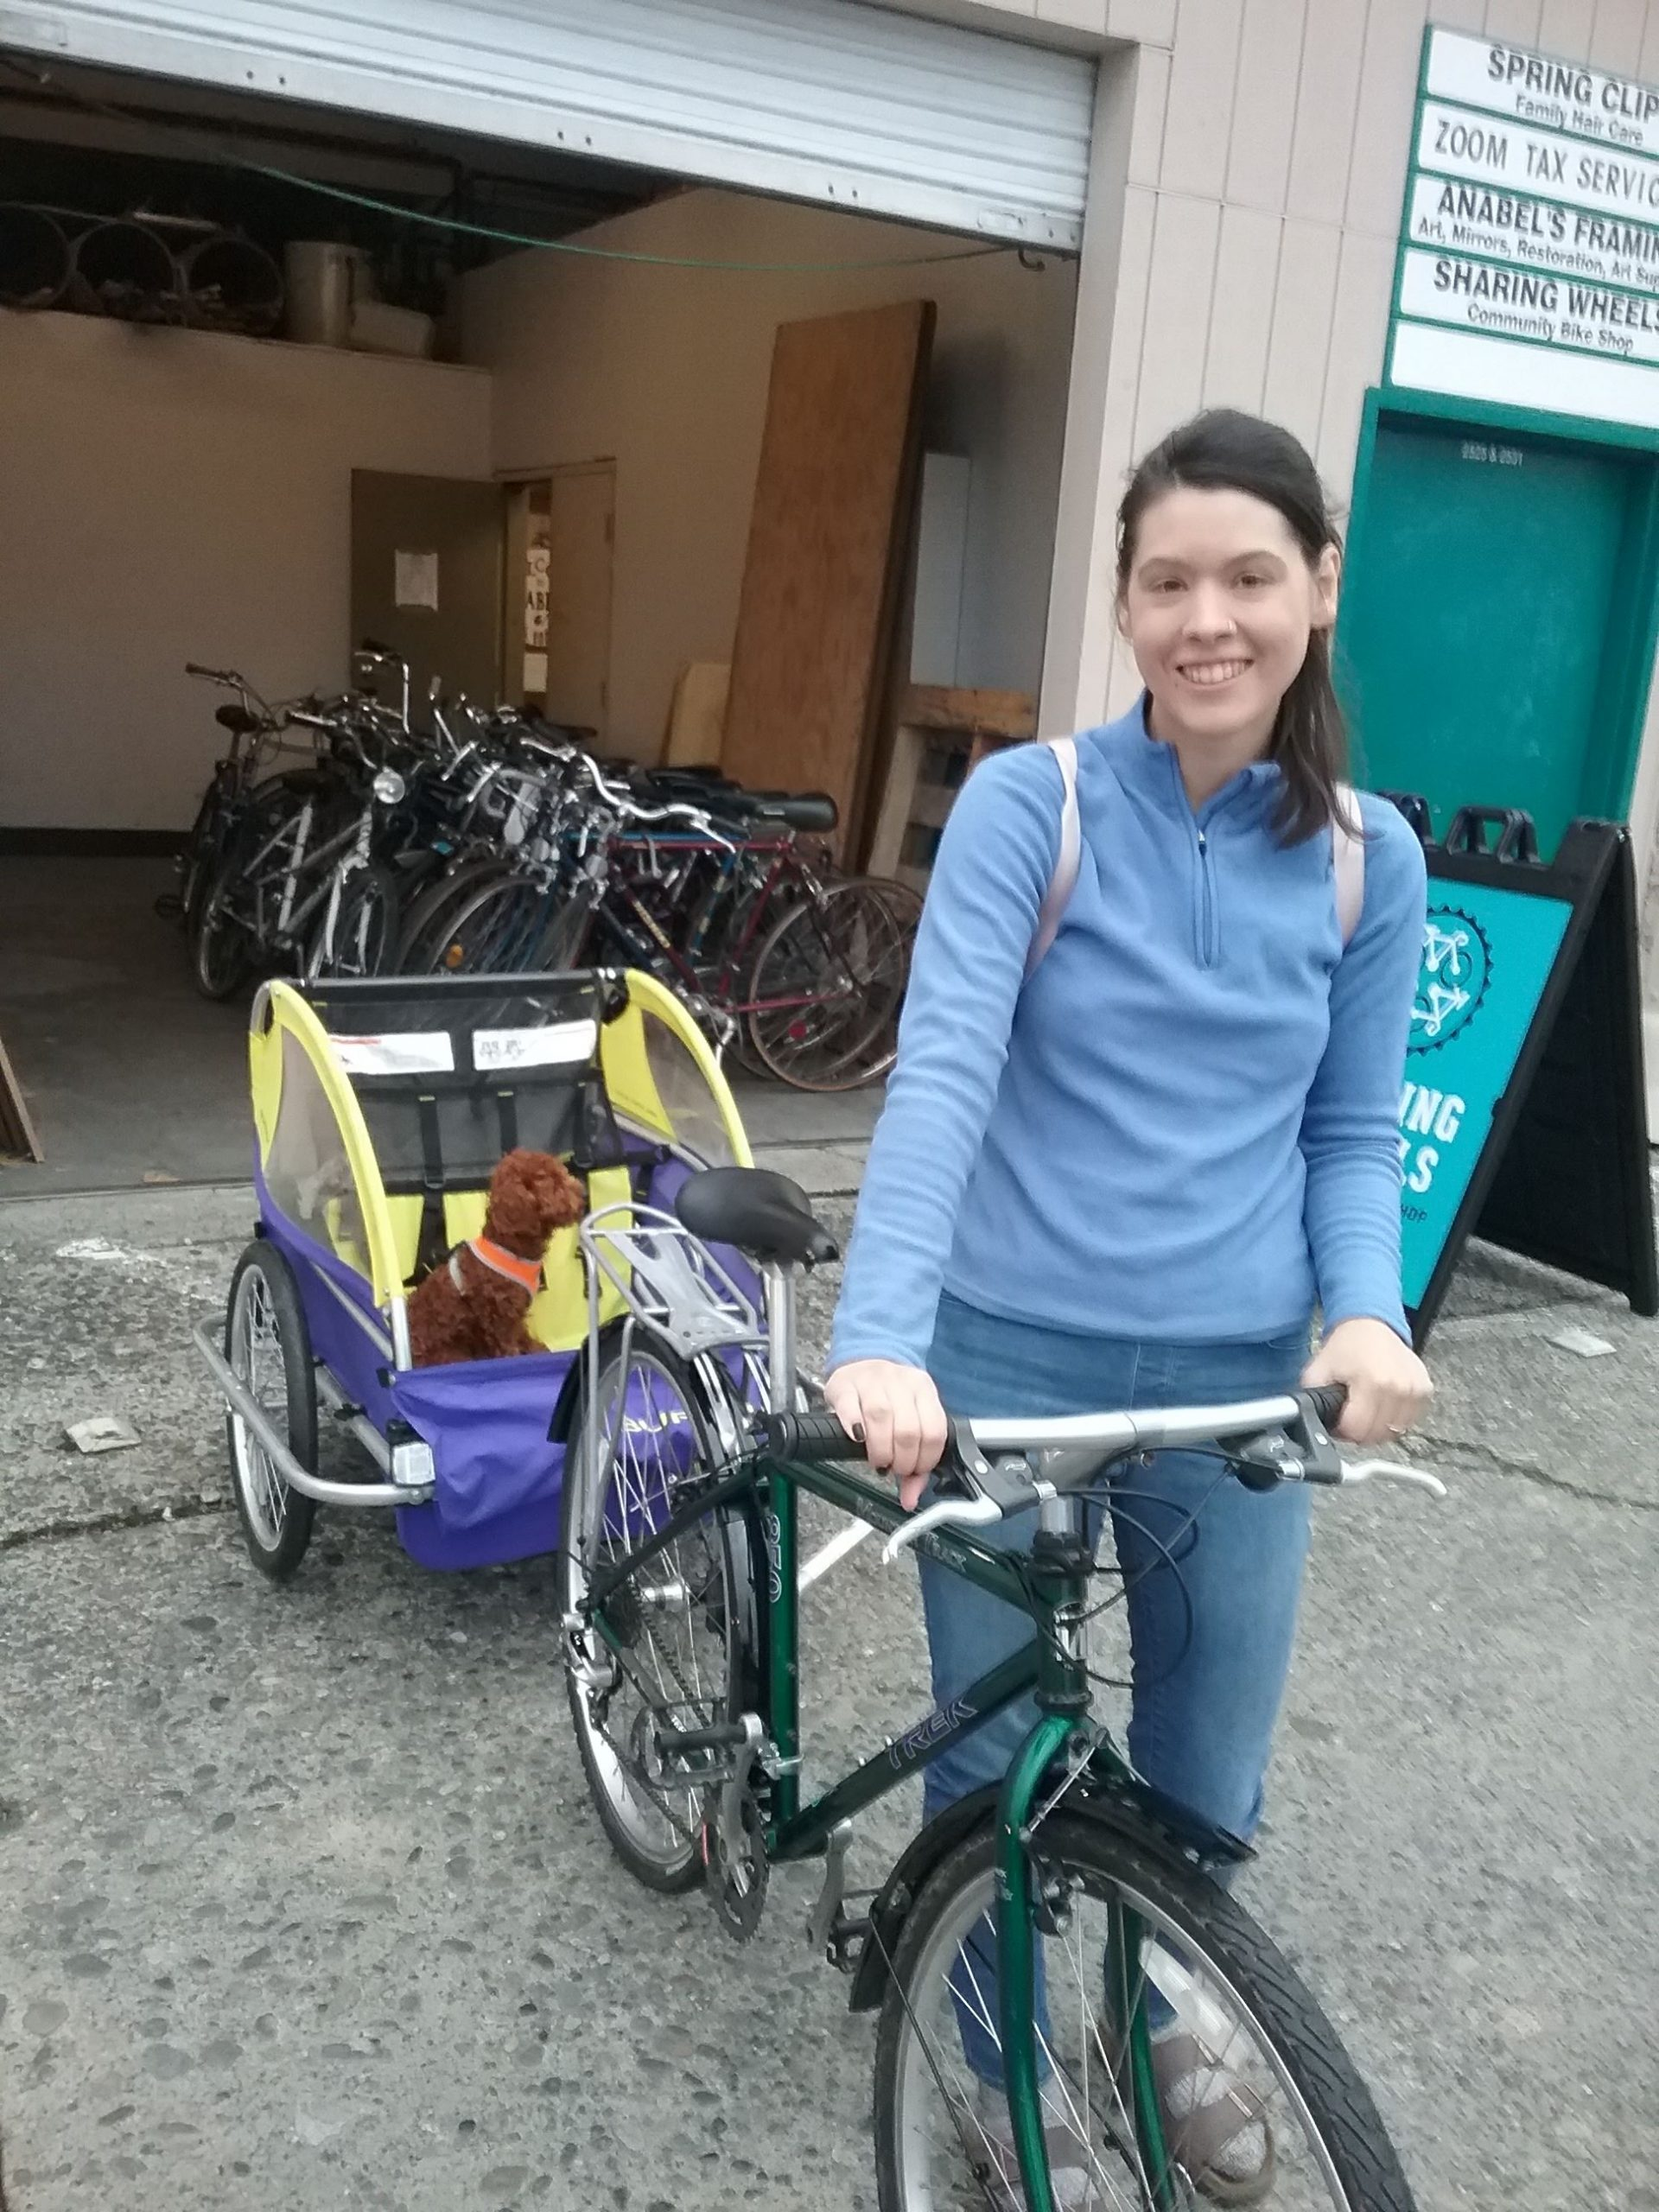 woman holds bike towing a trailer with a small dog in it